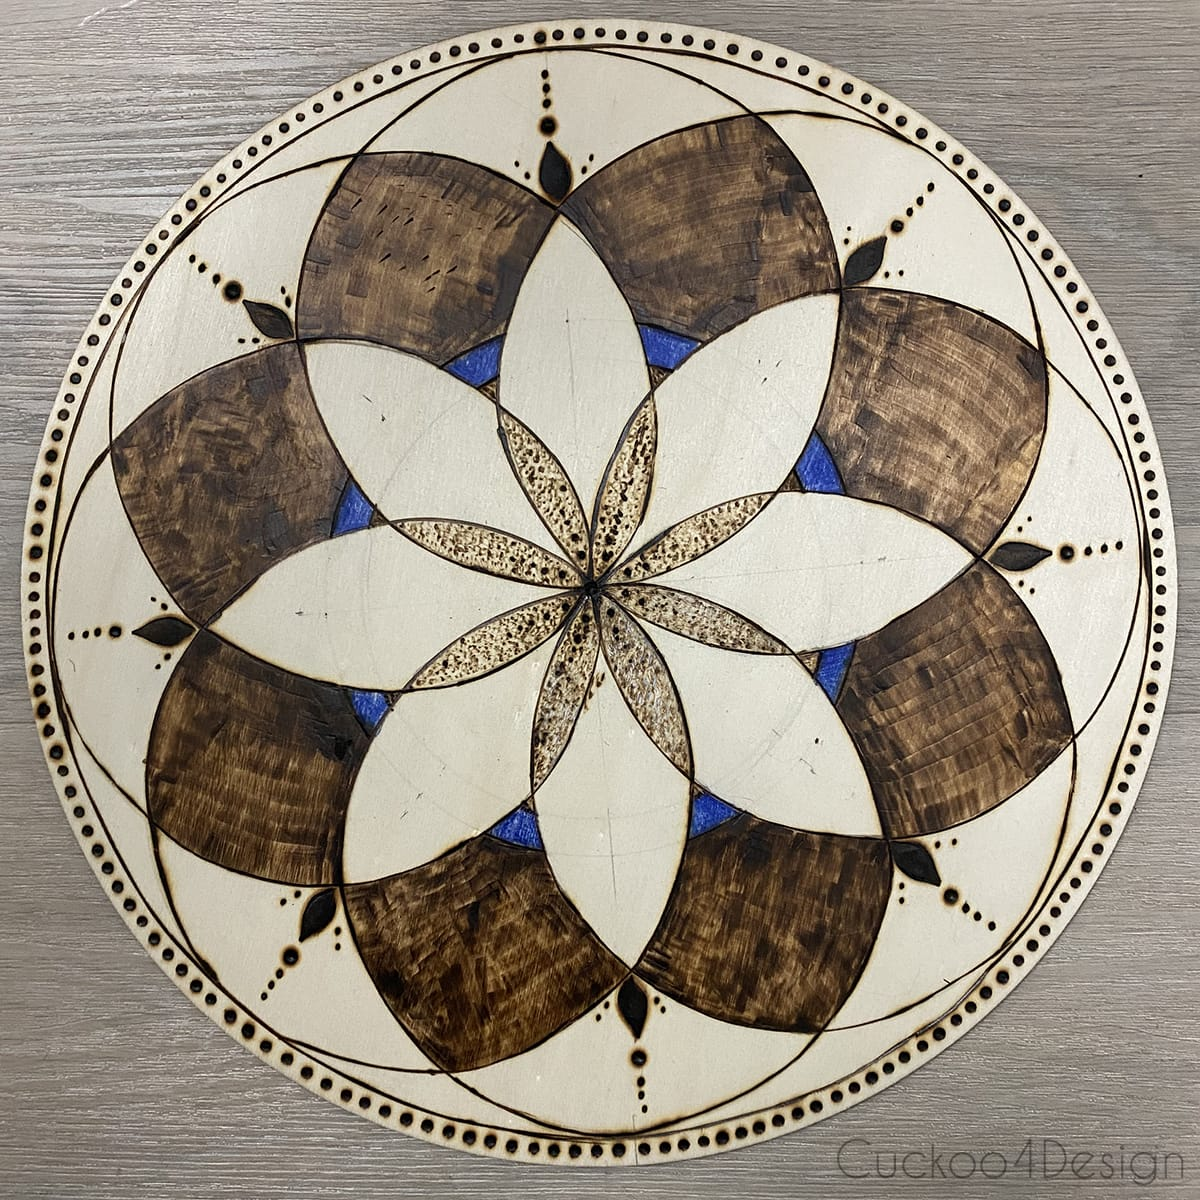 finished mandala pattern with circular structure from instructional video